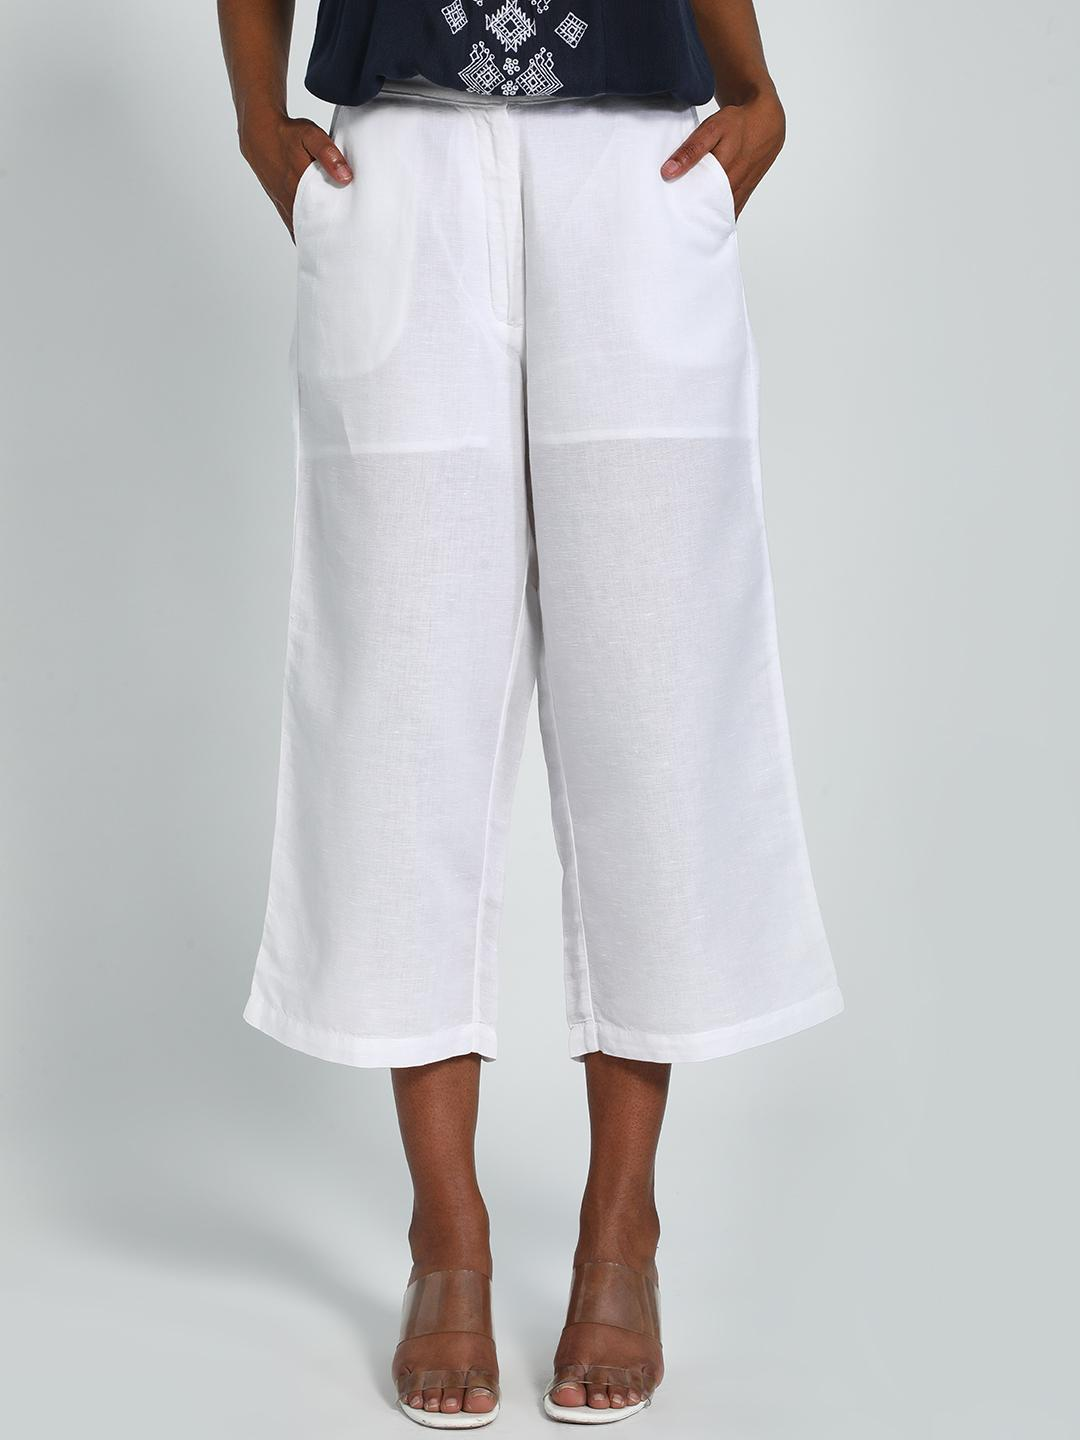 AND White Basic Linen Culottes 1